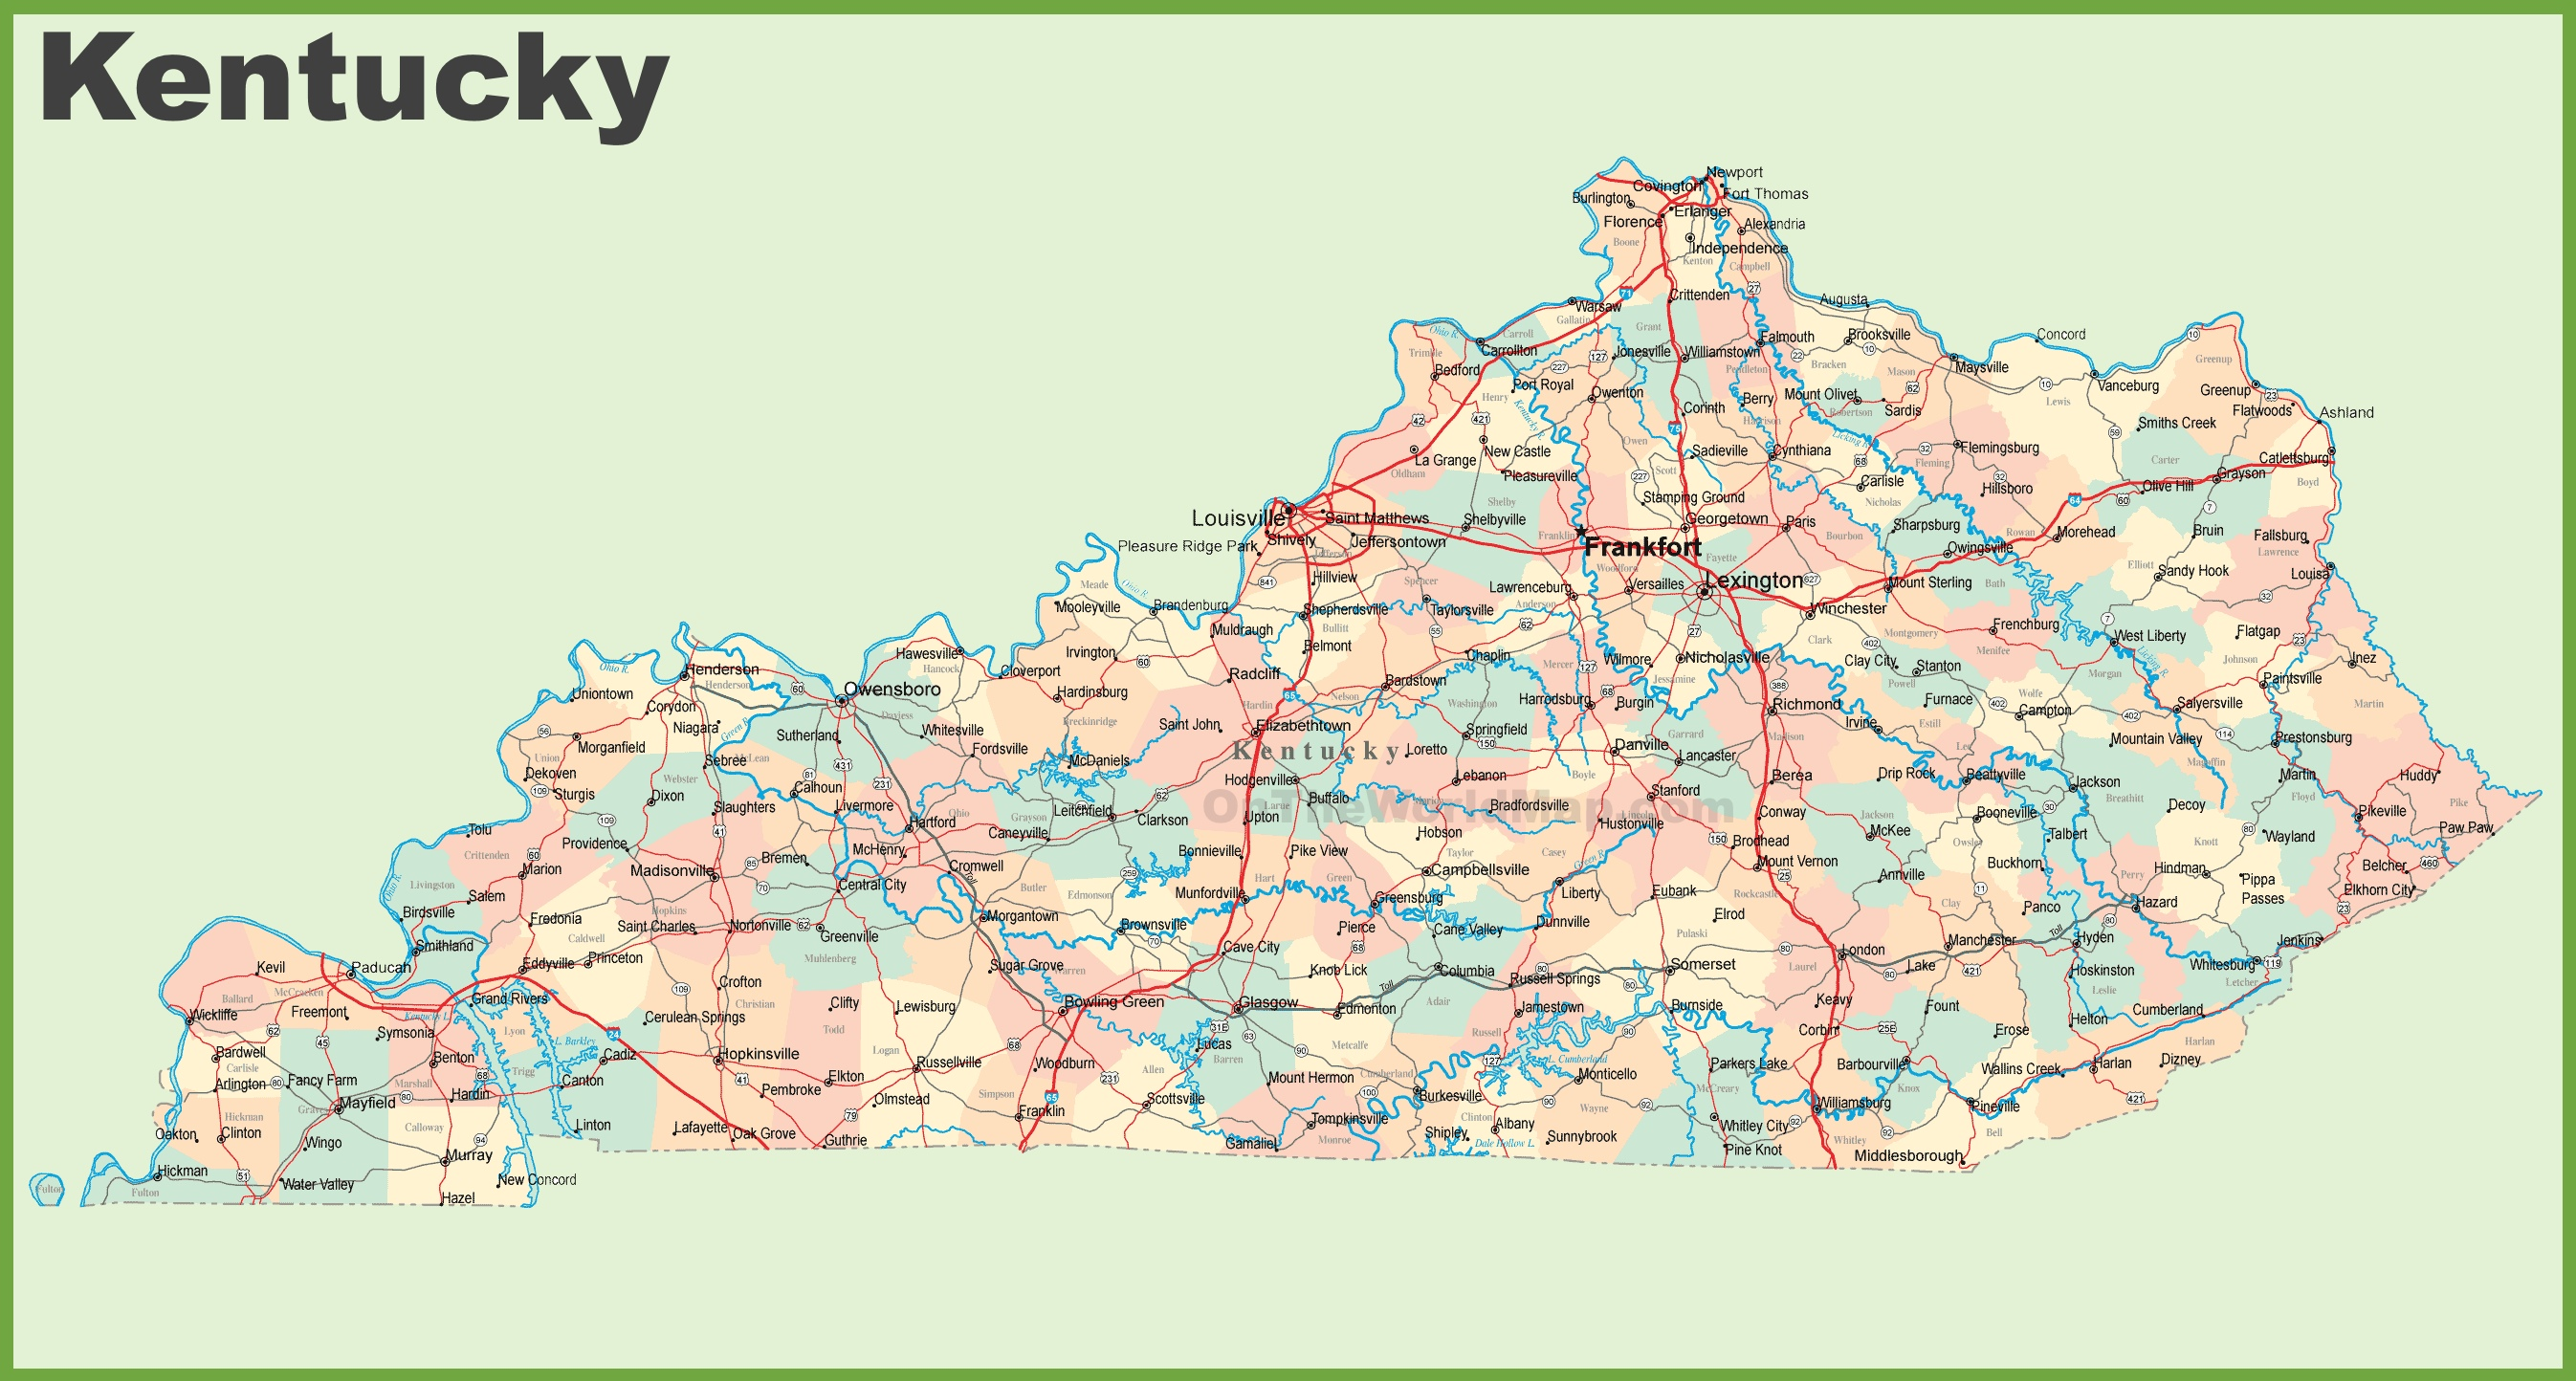 Road Map Of Kentucky With Cities - Cities map of kentucky